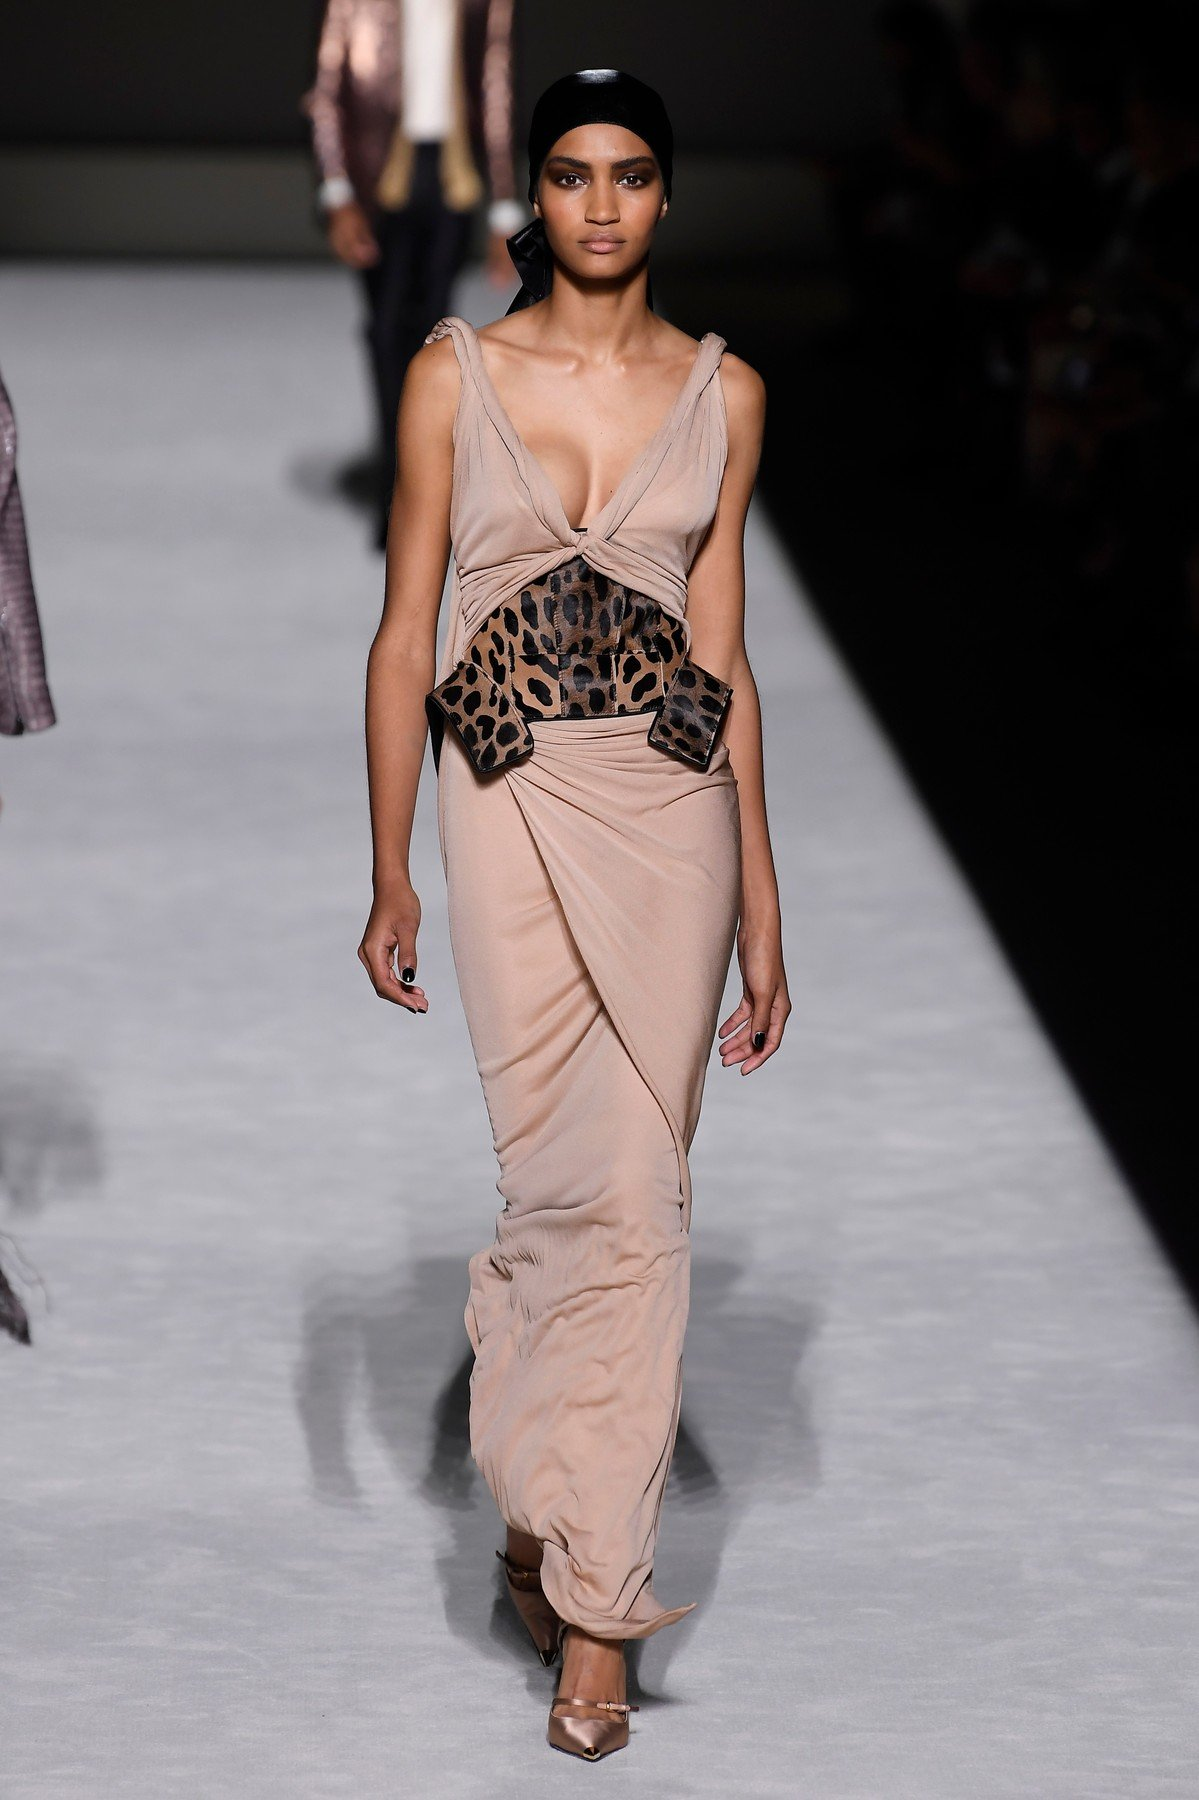 Model on the catwalk Tom Ford show, Runway, Spring Summer 2019, New York Fashion Week, USA - 05 Sep 2018, Image: 385463277, License: Rights-managed, Restrictions: , Model Release: no, Credit line: Profimedia, TEMP Rex Features